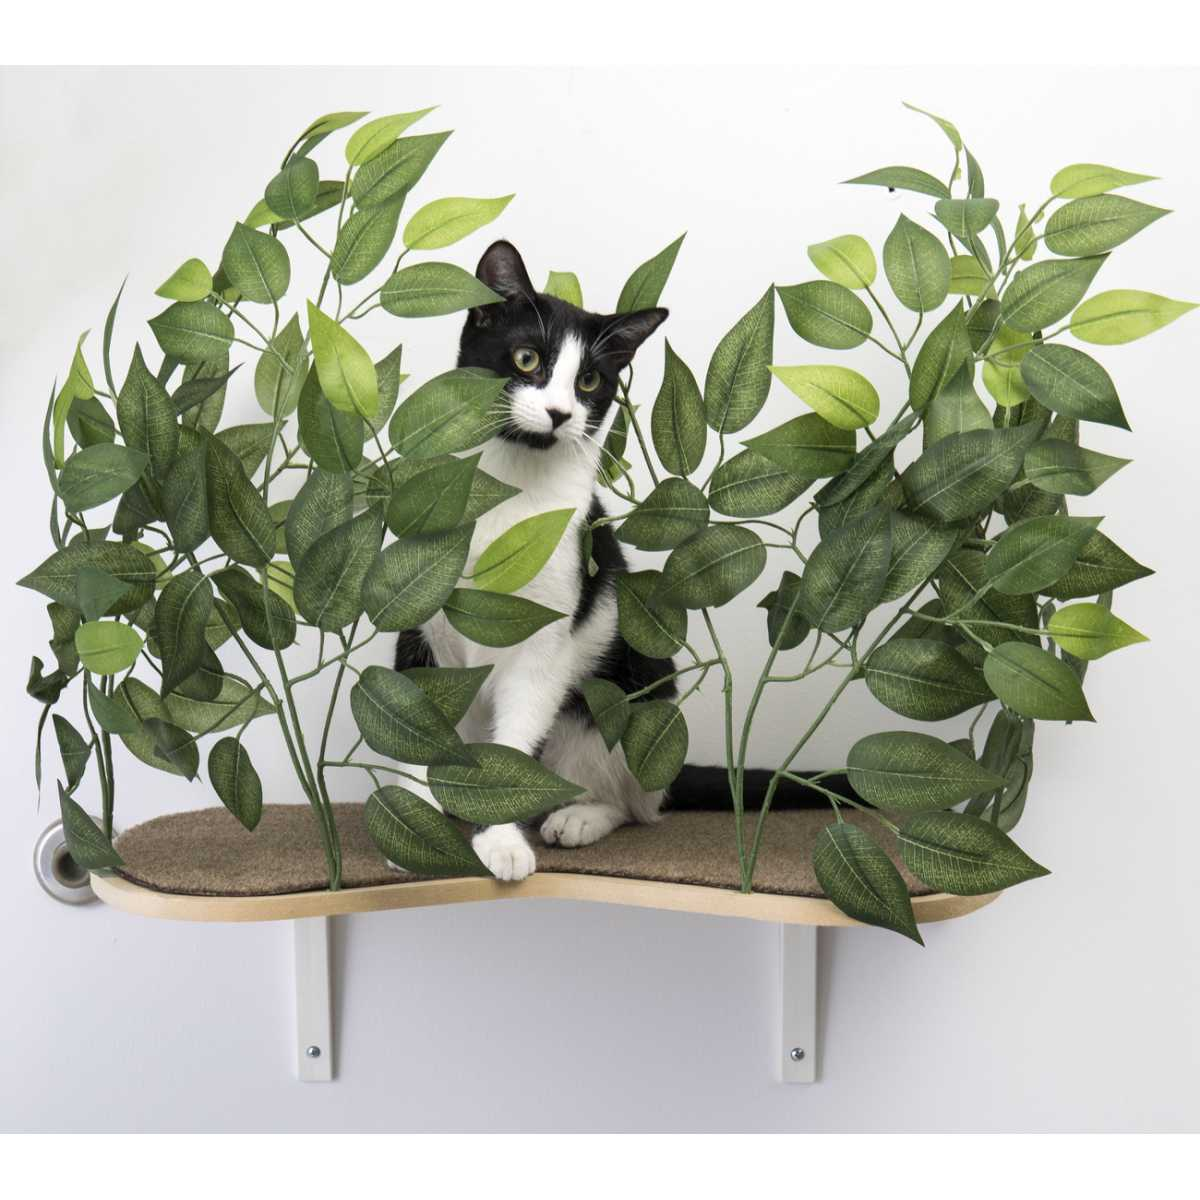 Outdoor Cat Shelves Canopy Cat Wall Shelves With Leaves Set Of 2